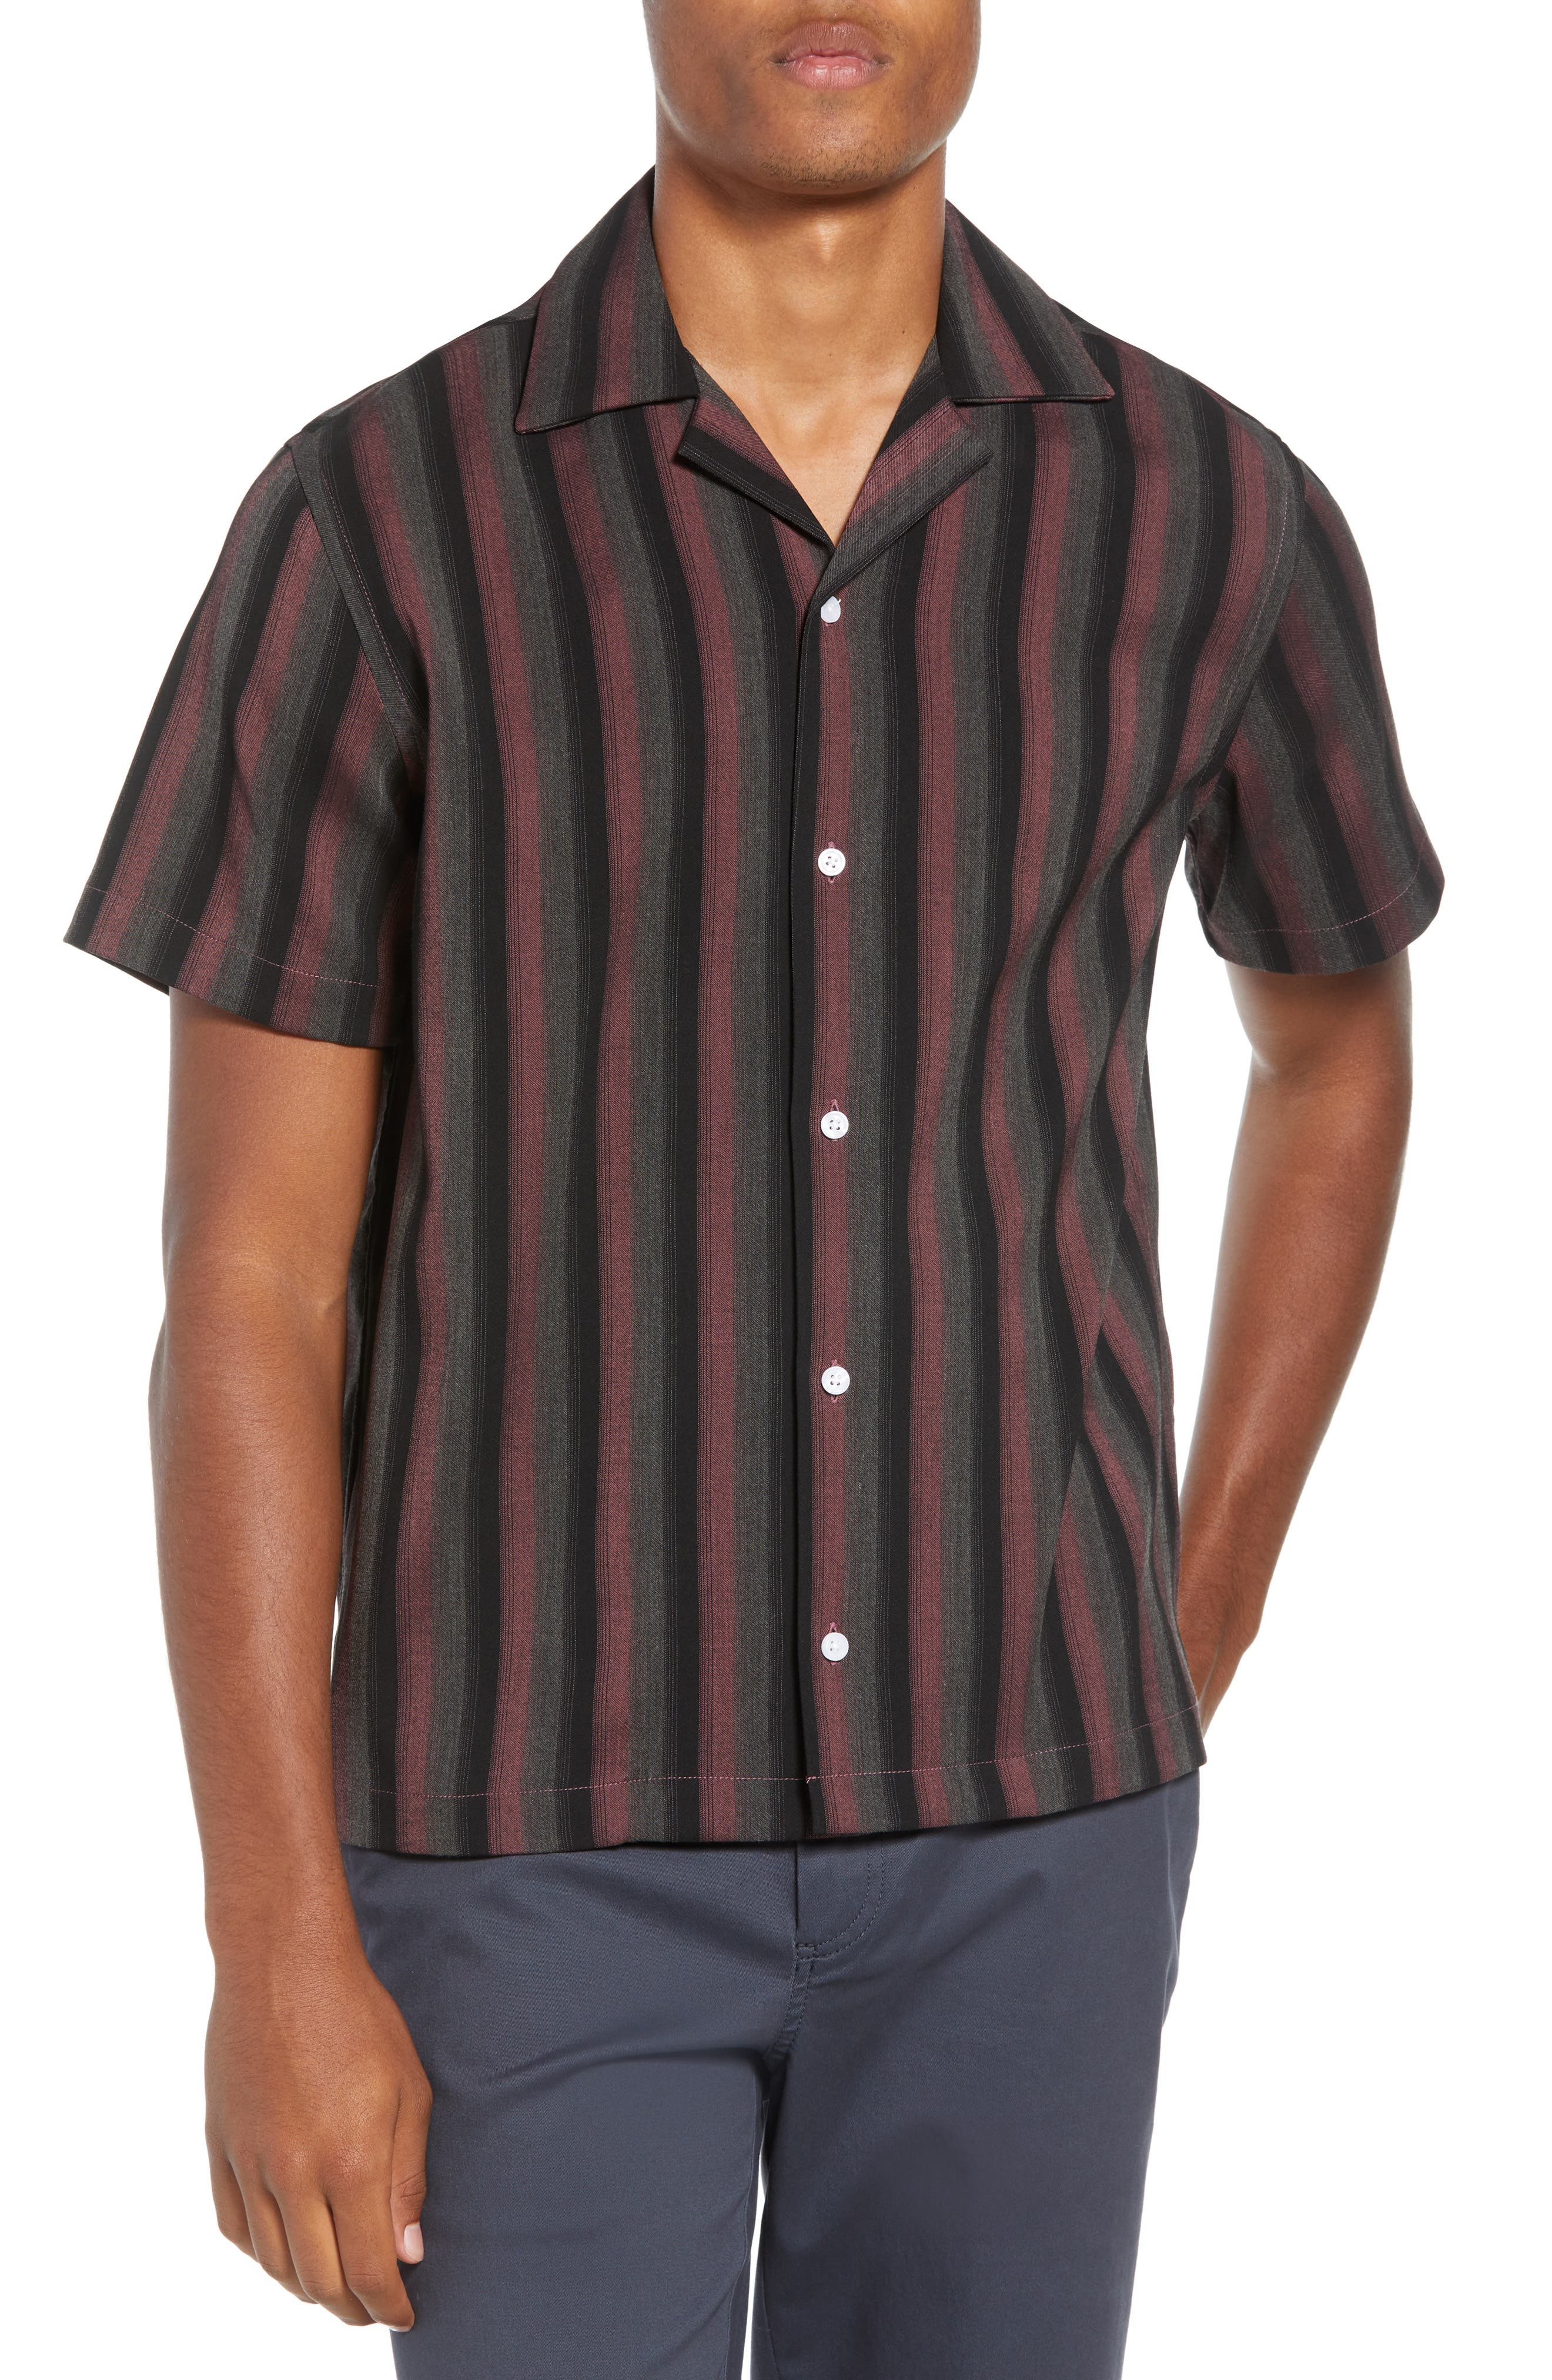 Canty Frequency Camp Shirt,                         Main,                         color, 650